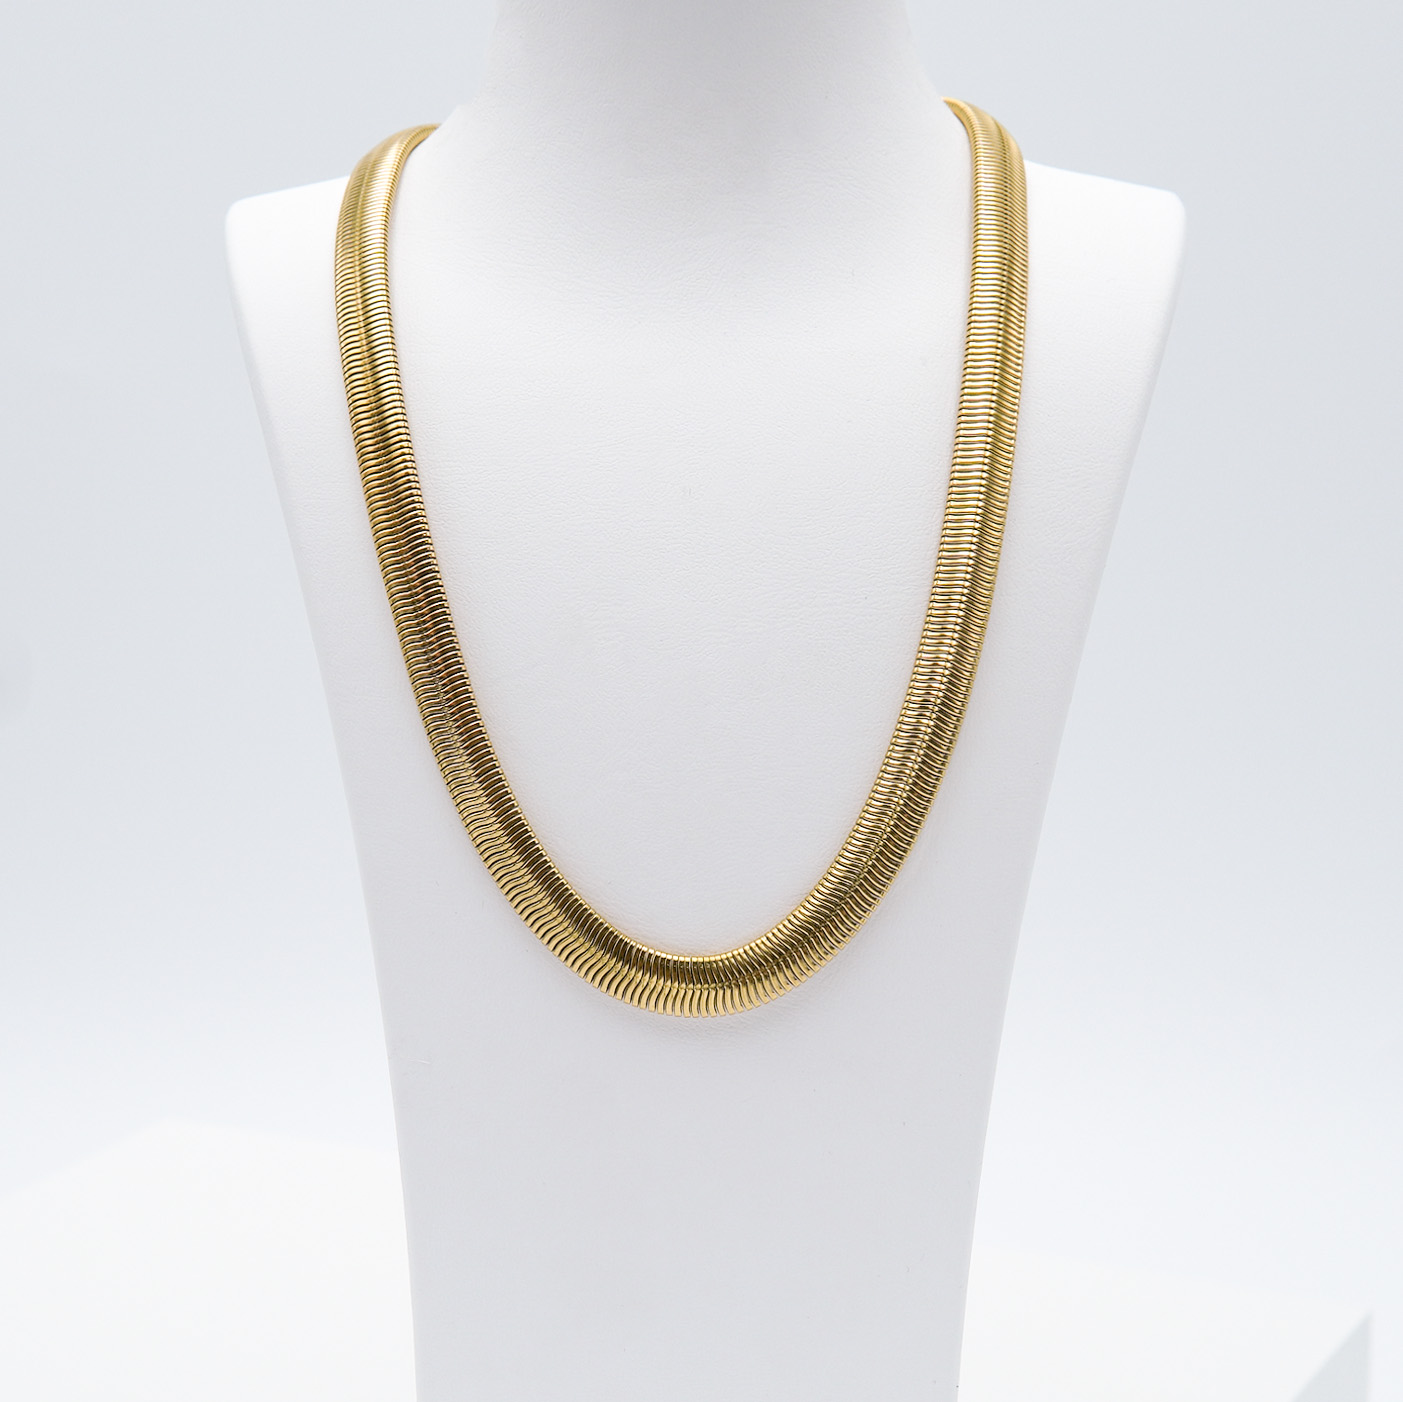 1- Marilyn Monroe Necklace Gold Edition Halsband Modern and trendy Necklace and women jewelry and accessories from SWEVALI fashion Sweden